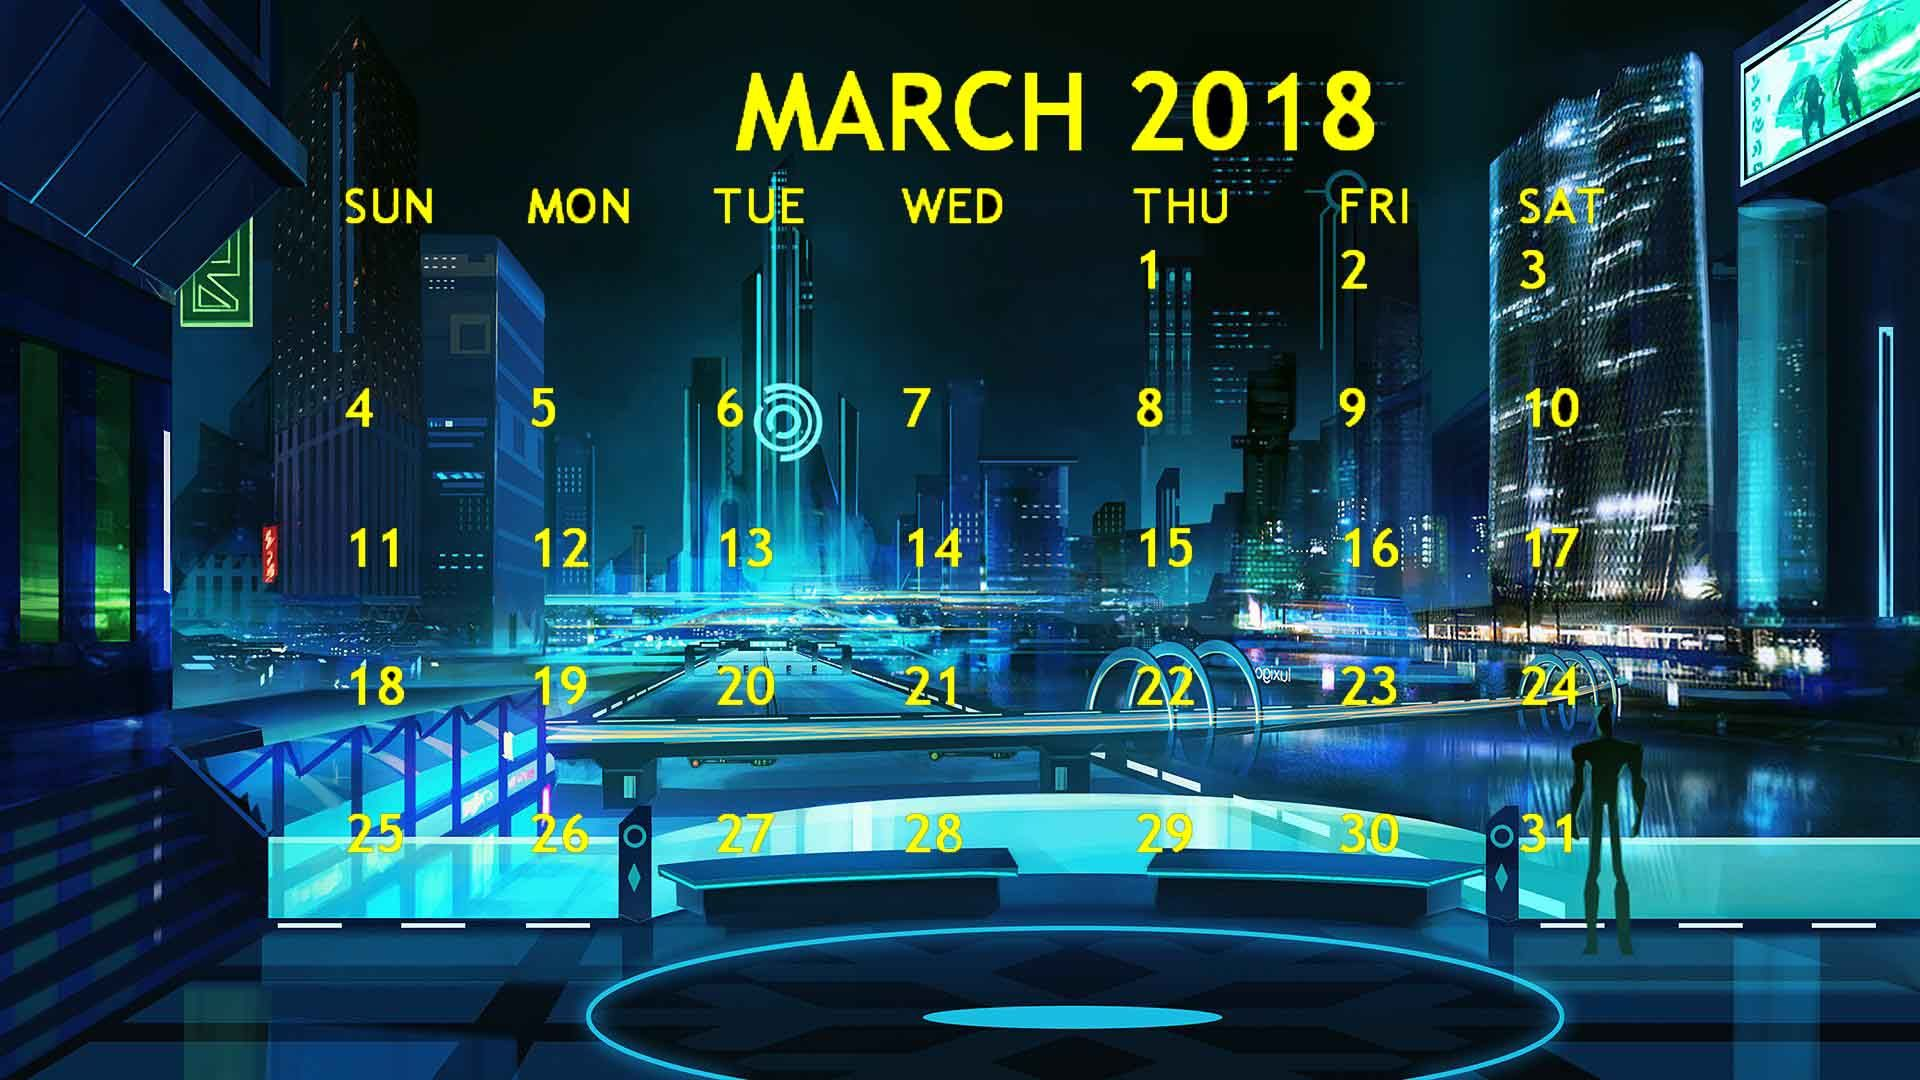 Calendar Wallpaper Originals : March calendar wallpaper wallpapers